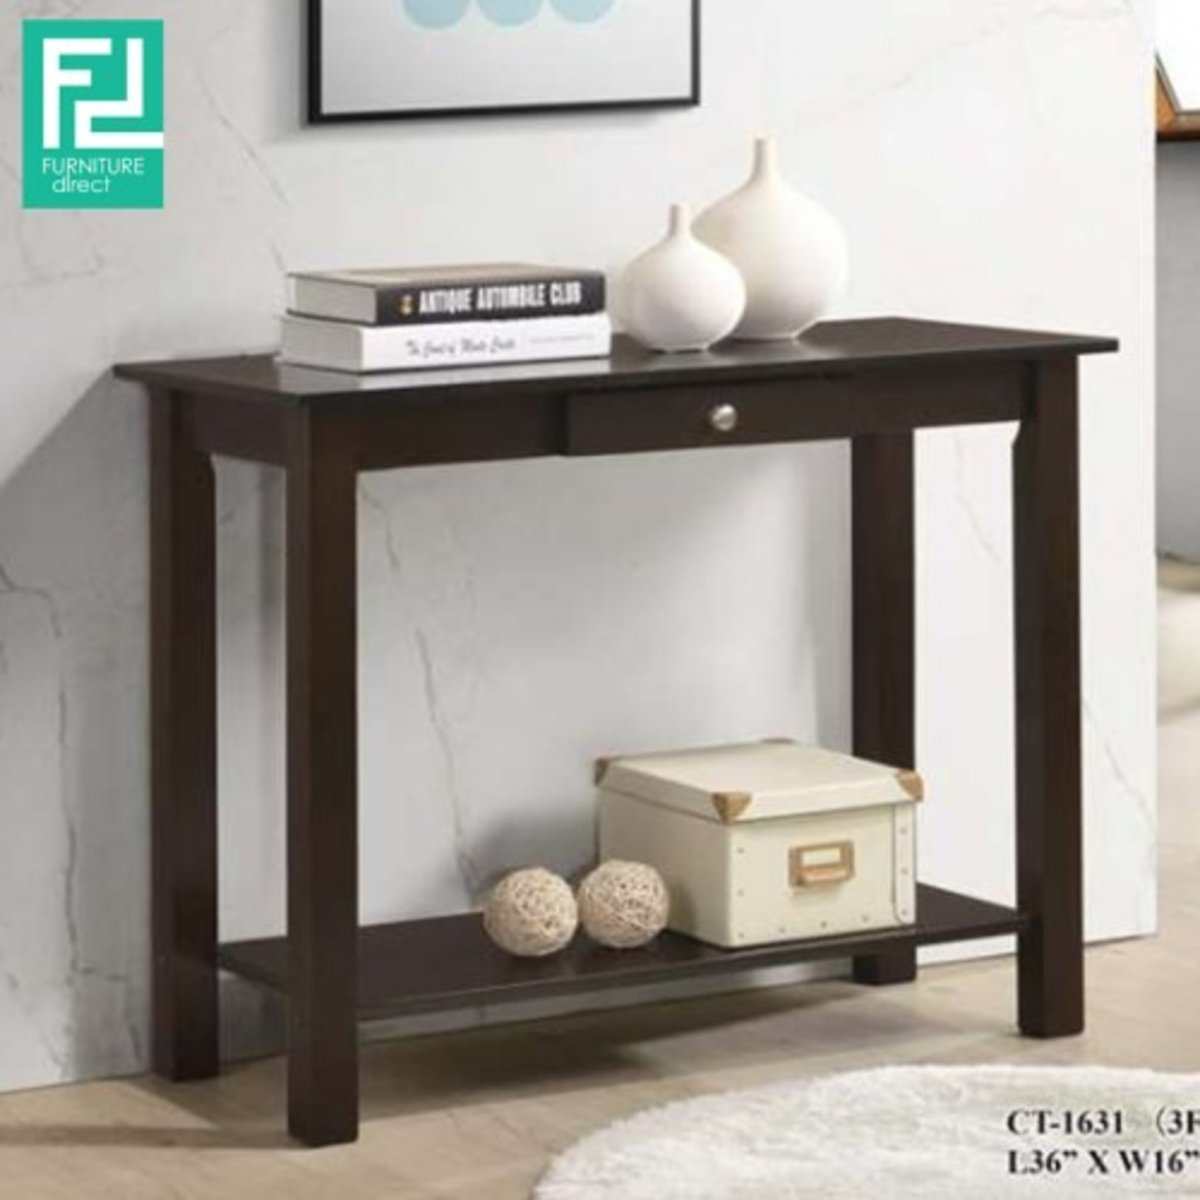 Furniture Direct 3 Ft Console Table Cst 1631